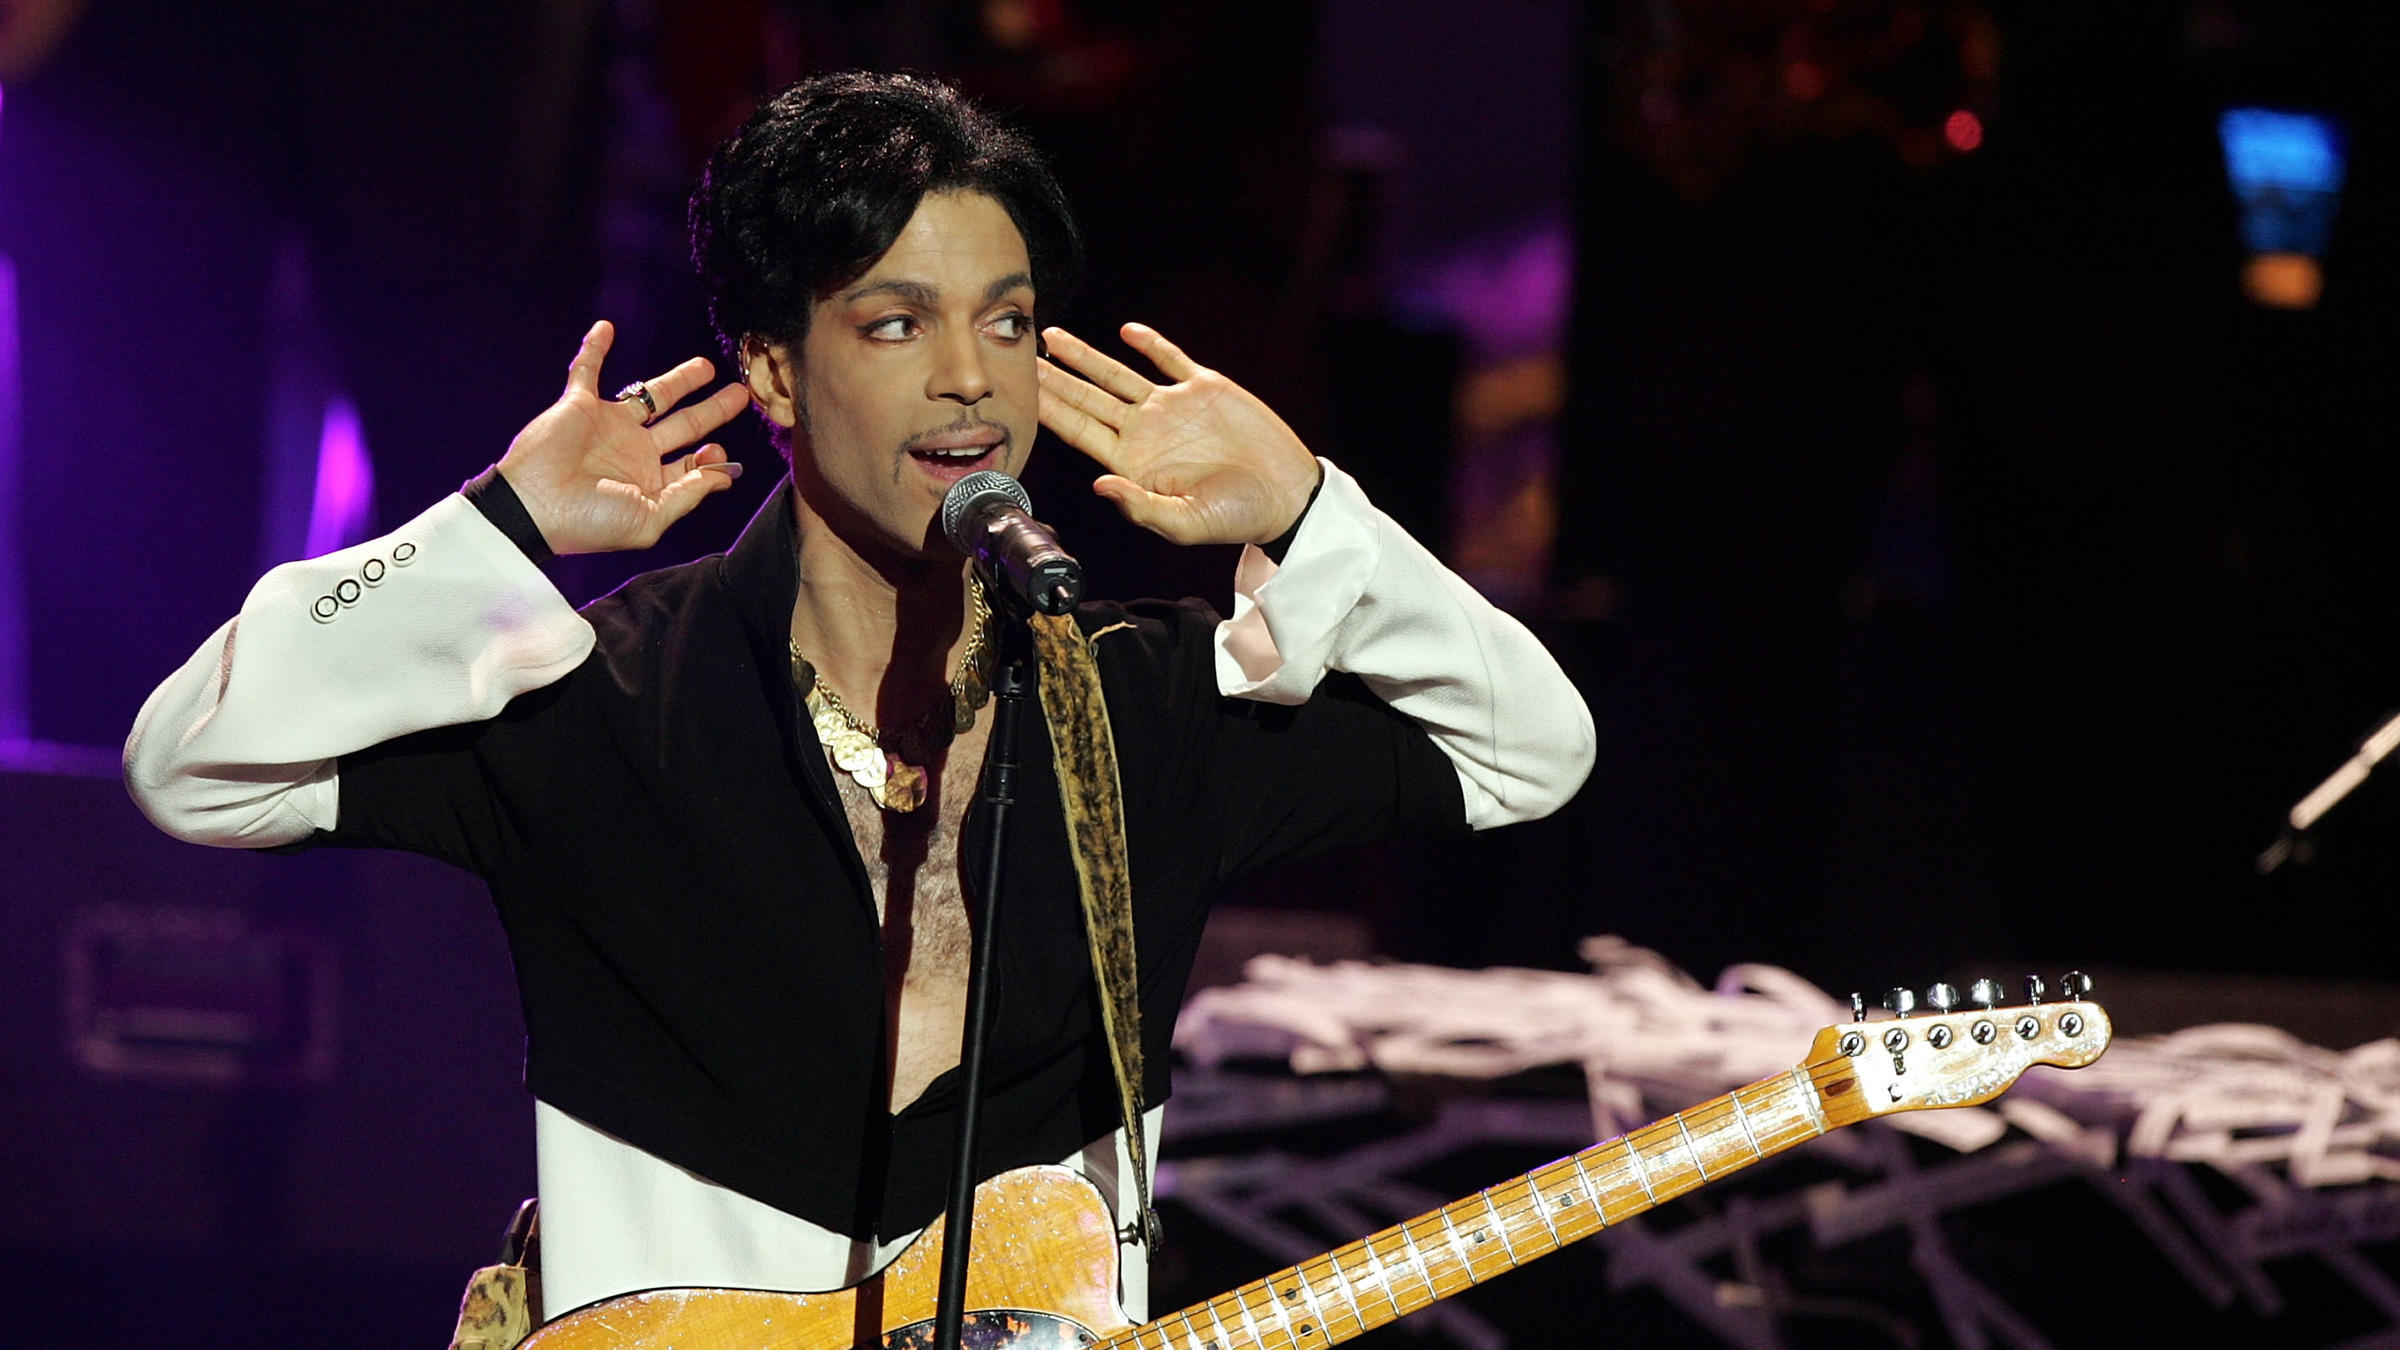 Court order blocks release of new Prince EP